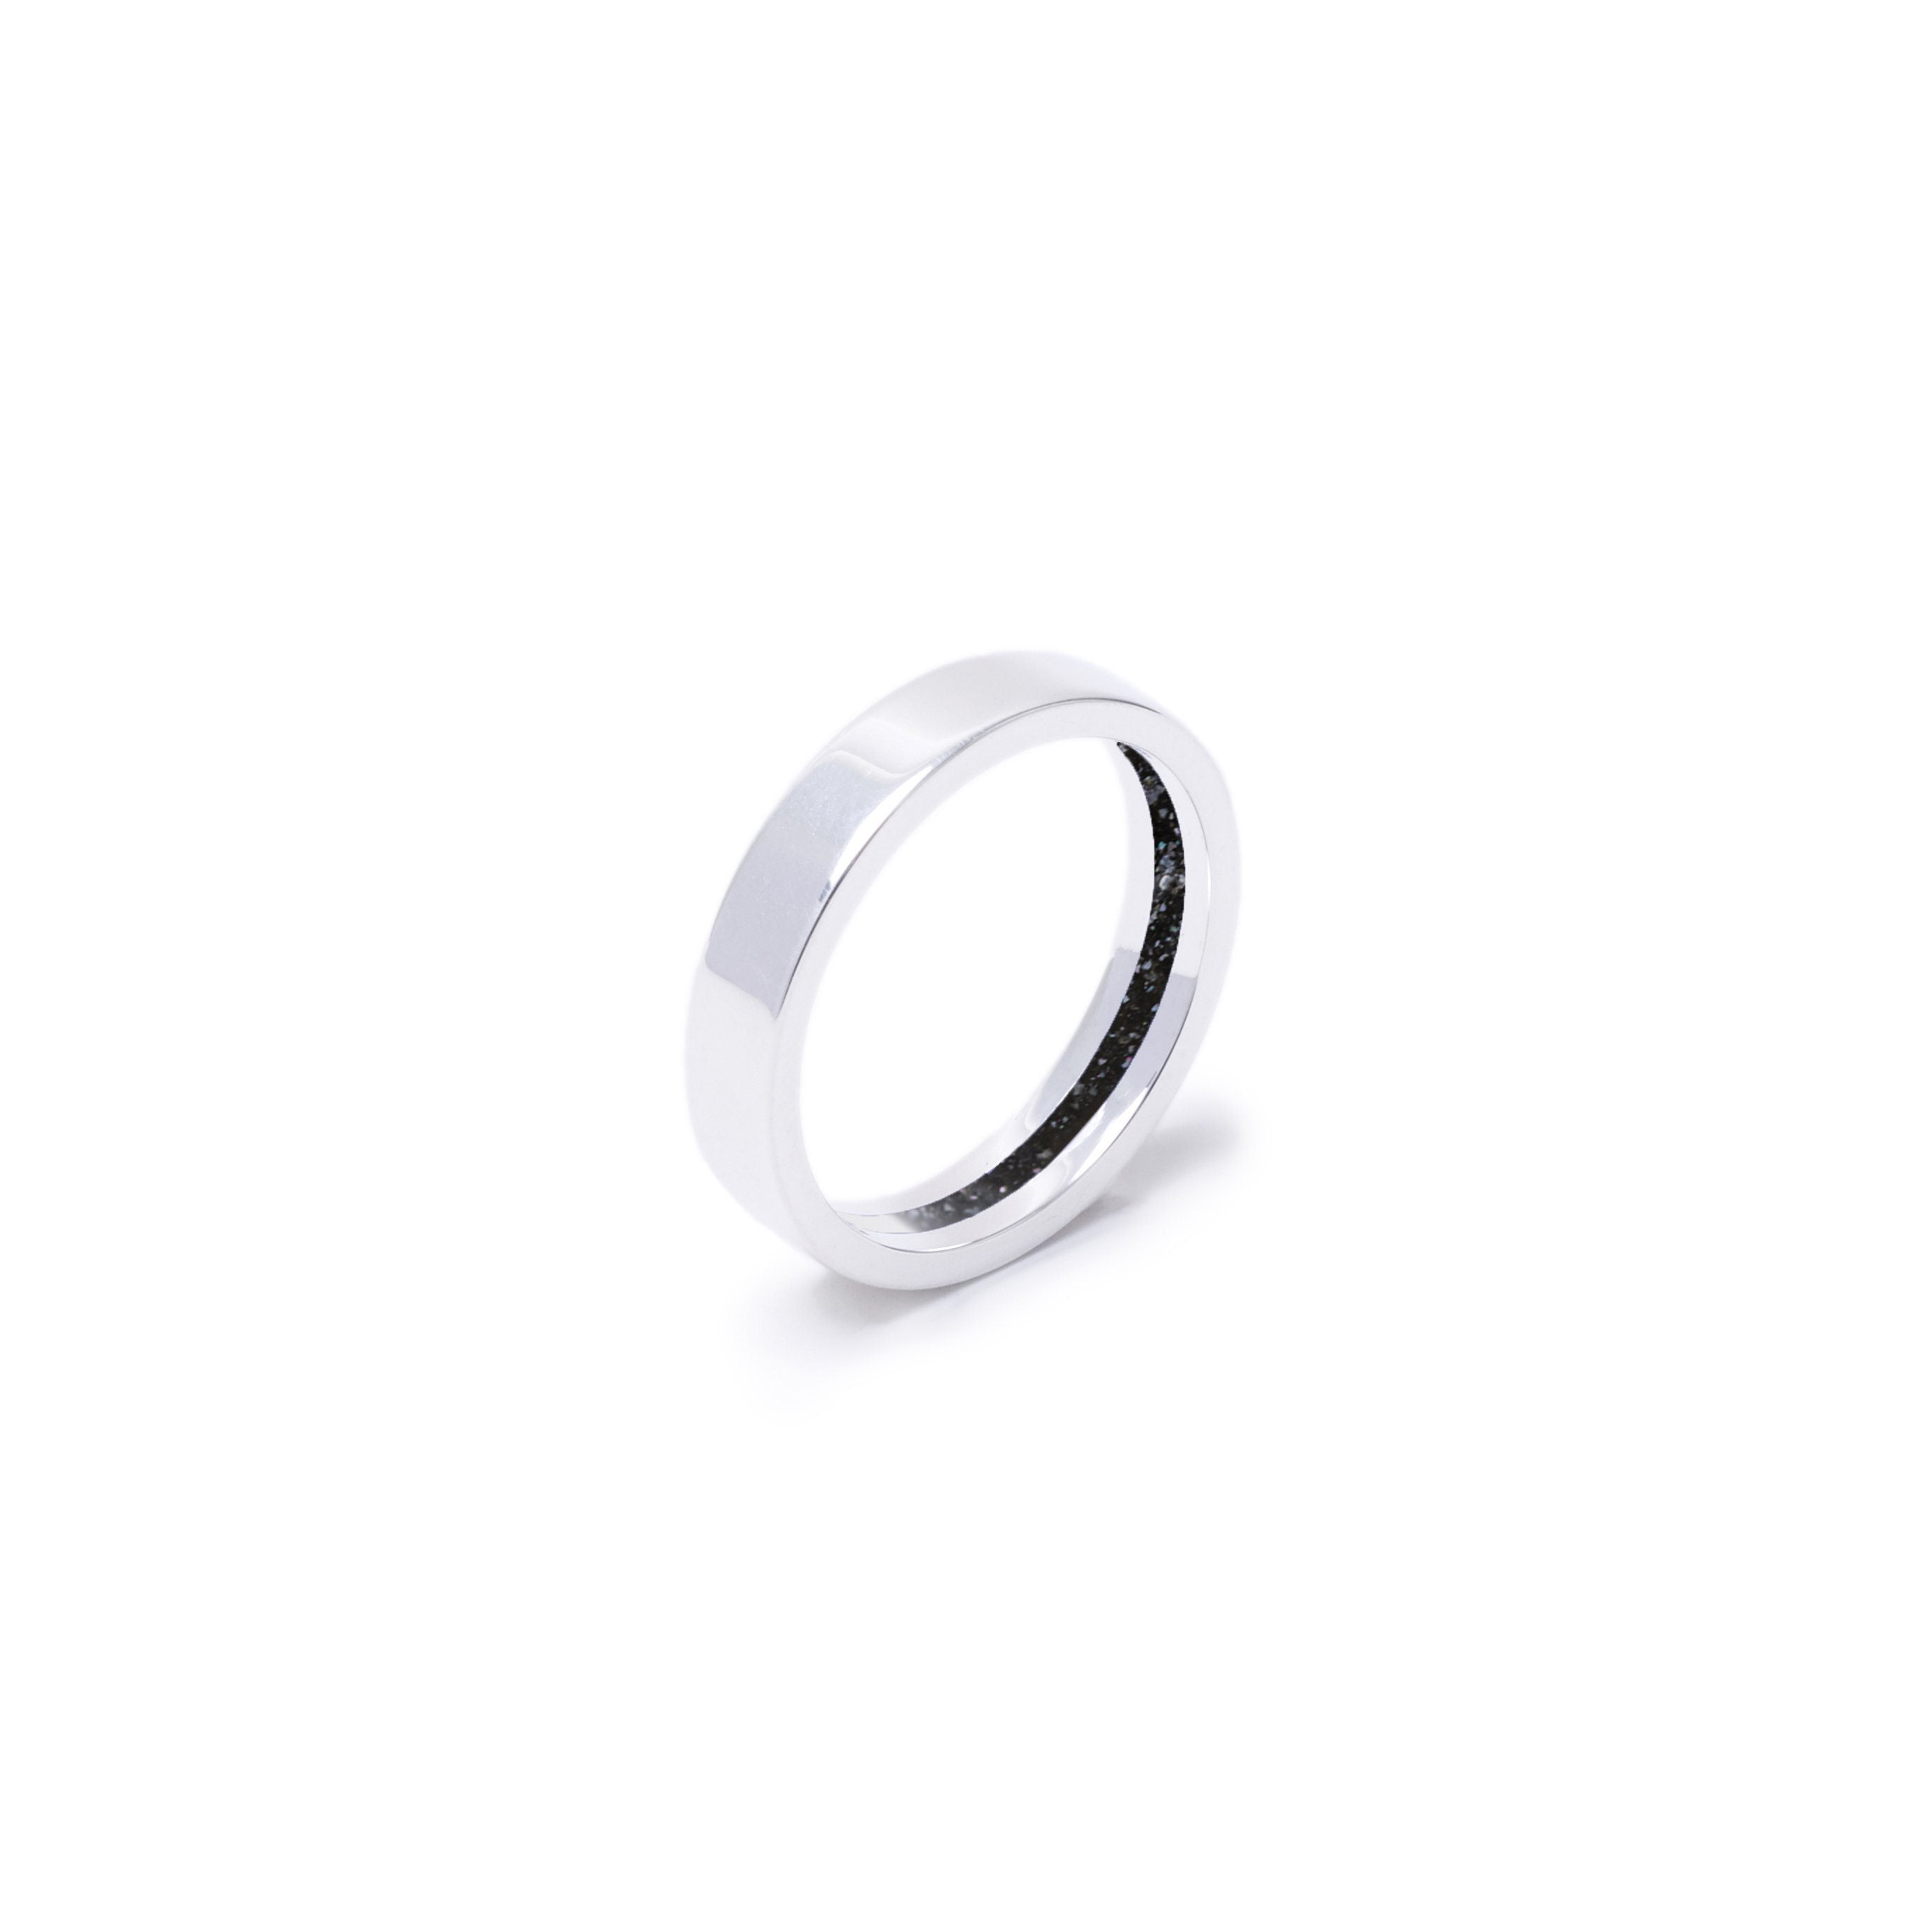 Everence Ring, Sterling Silver everence.life 4mm Charcoal